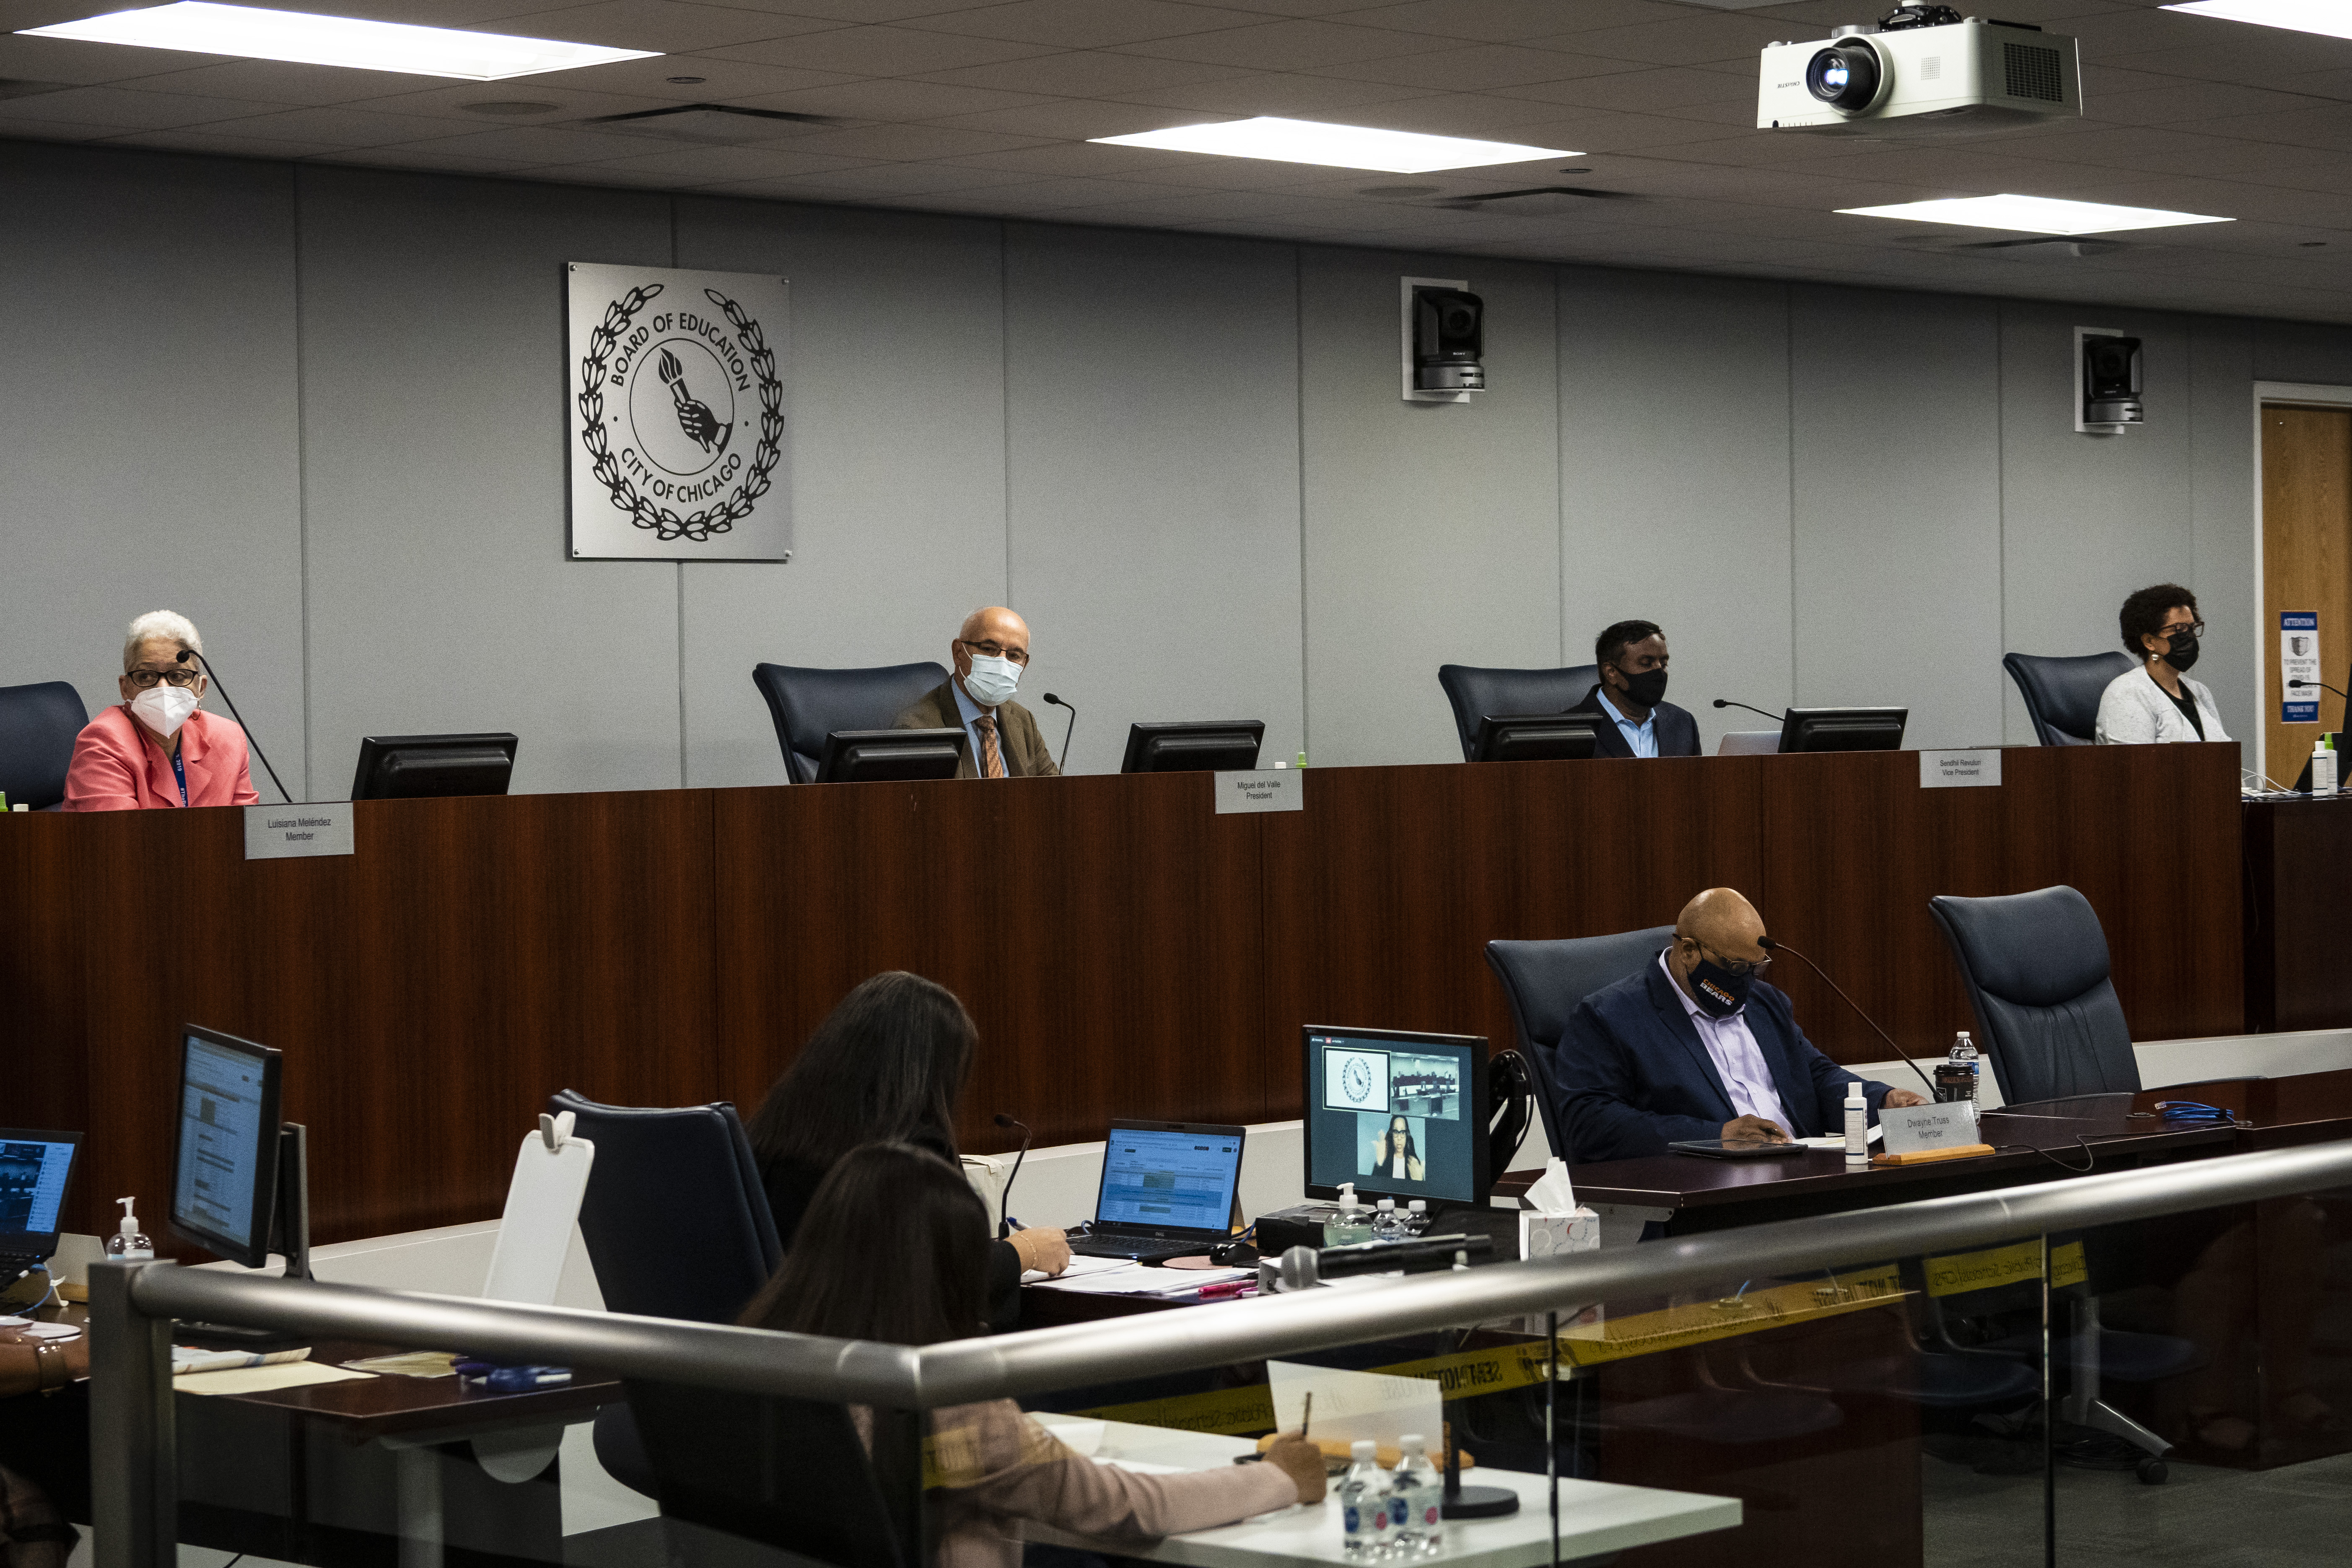 The Chicago Board of Education meets for its monthly meeting at Chicago Public Schools headquarters in the Loop, Wednesday morning, Sept. 22, 2021.